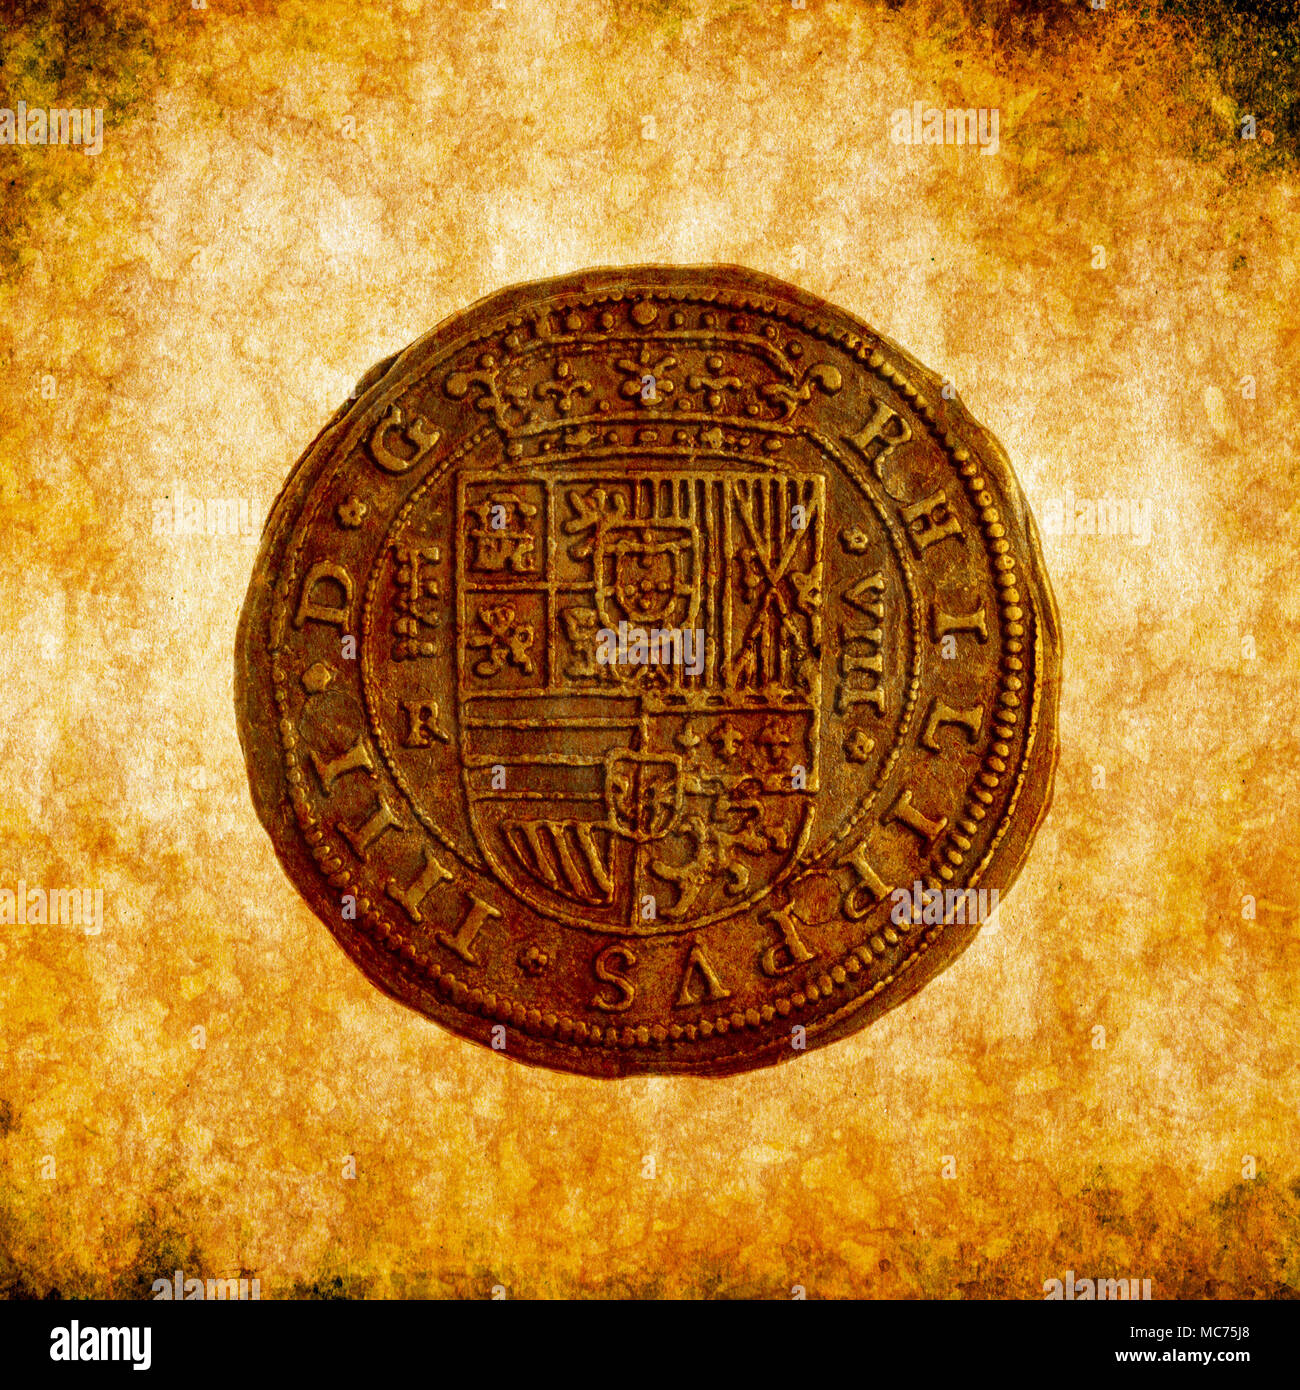 ancient coin on grunge background - Stock Image